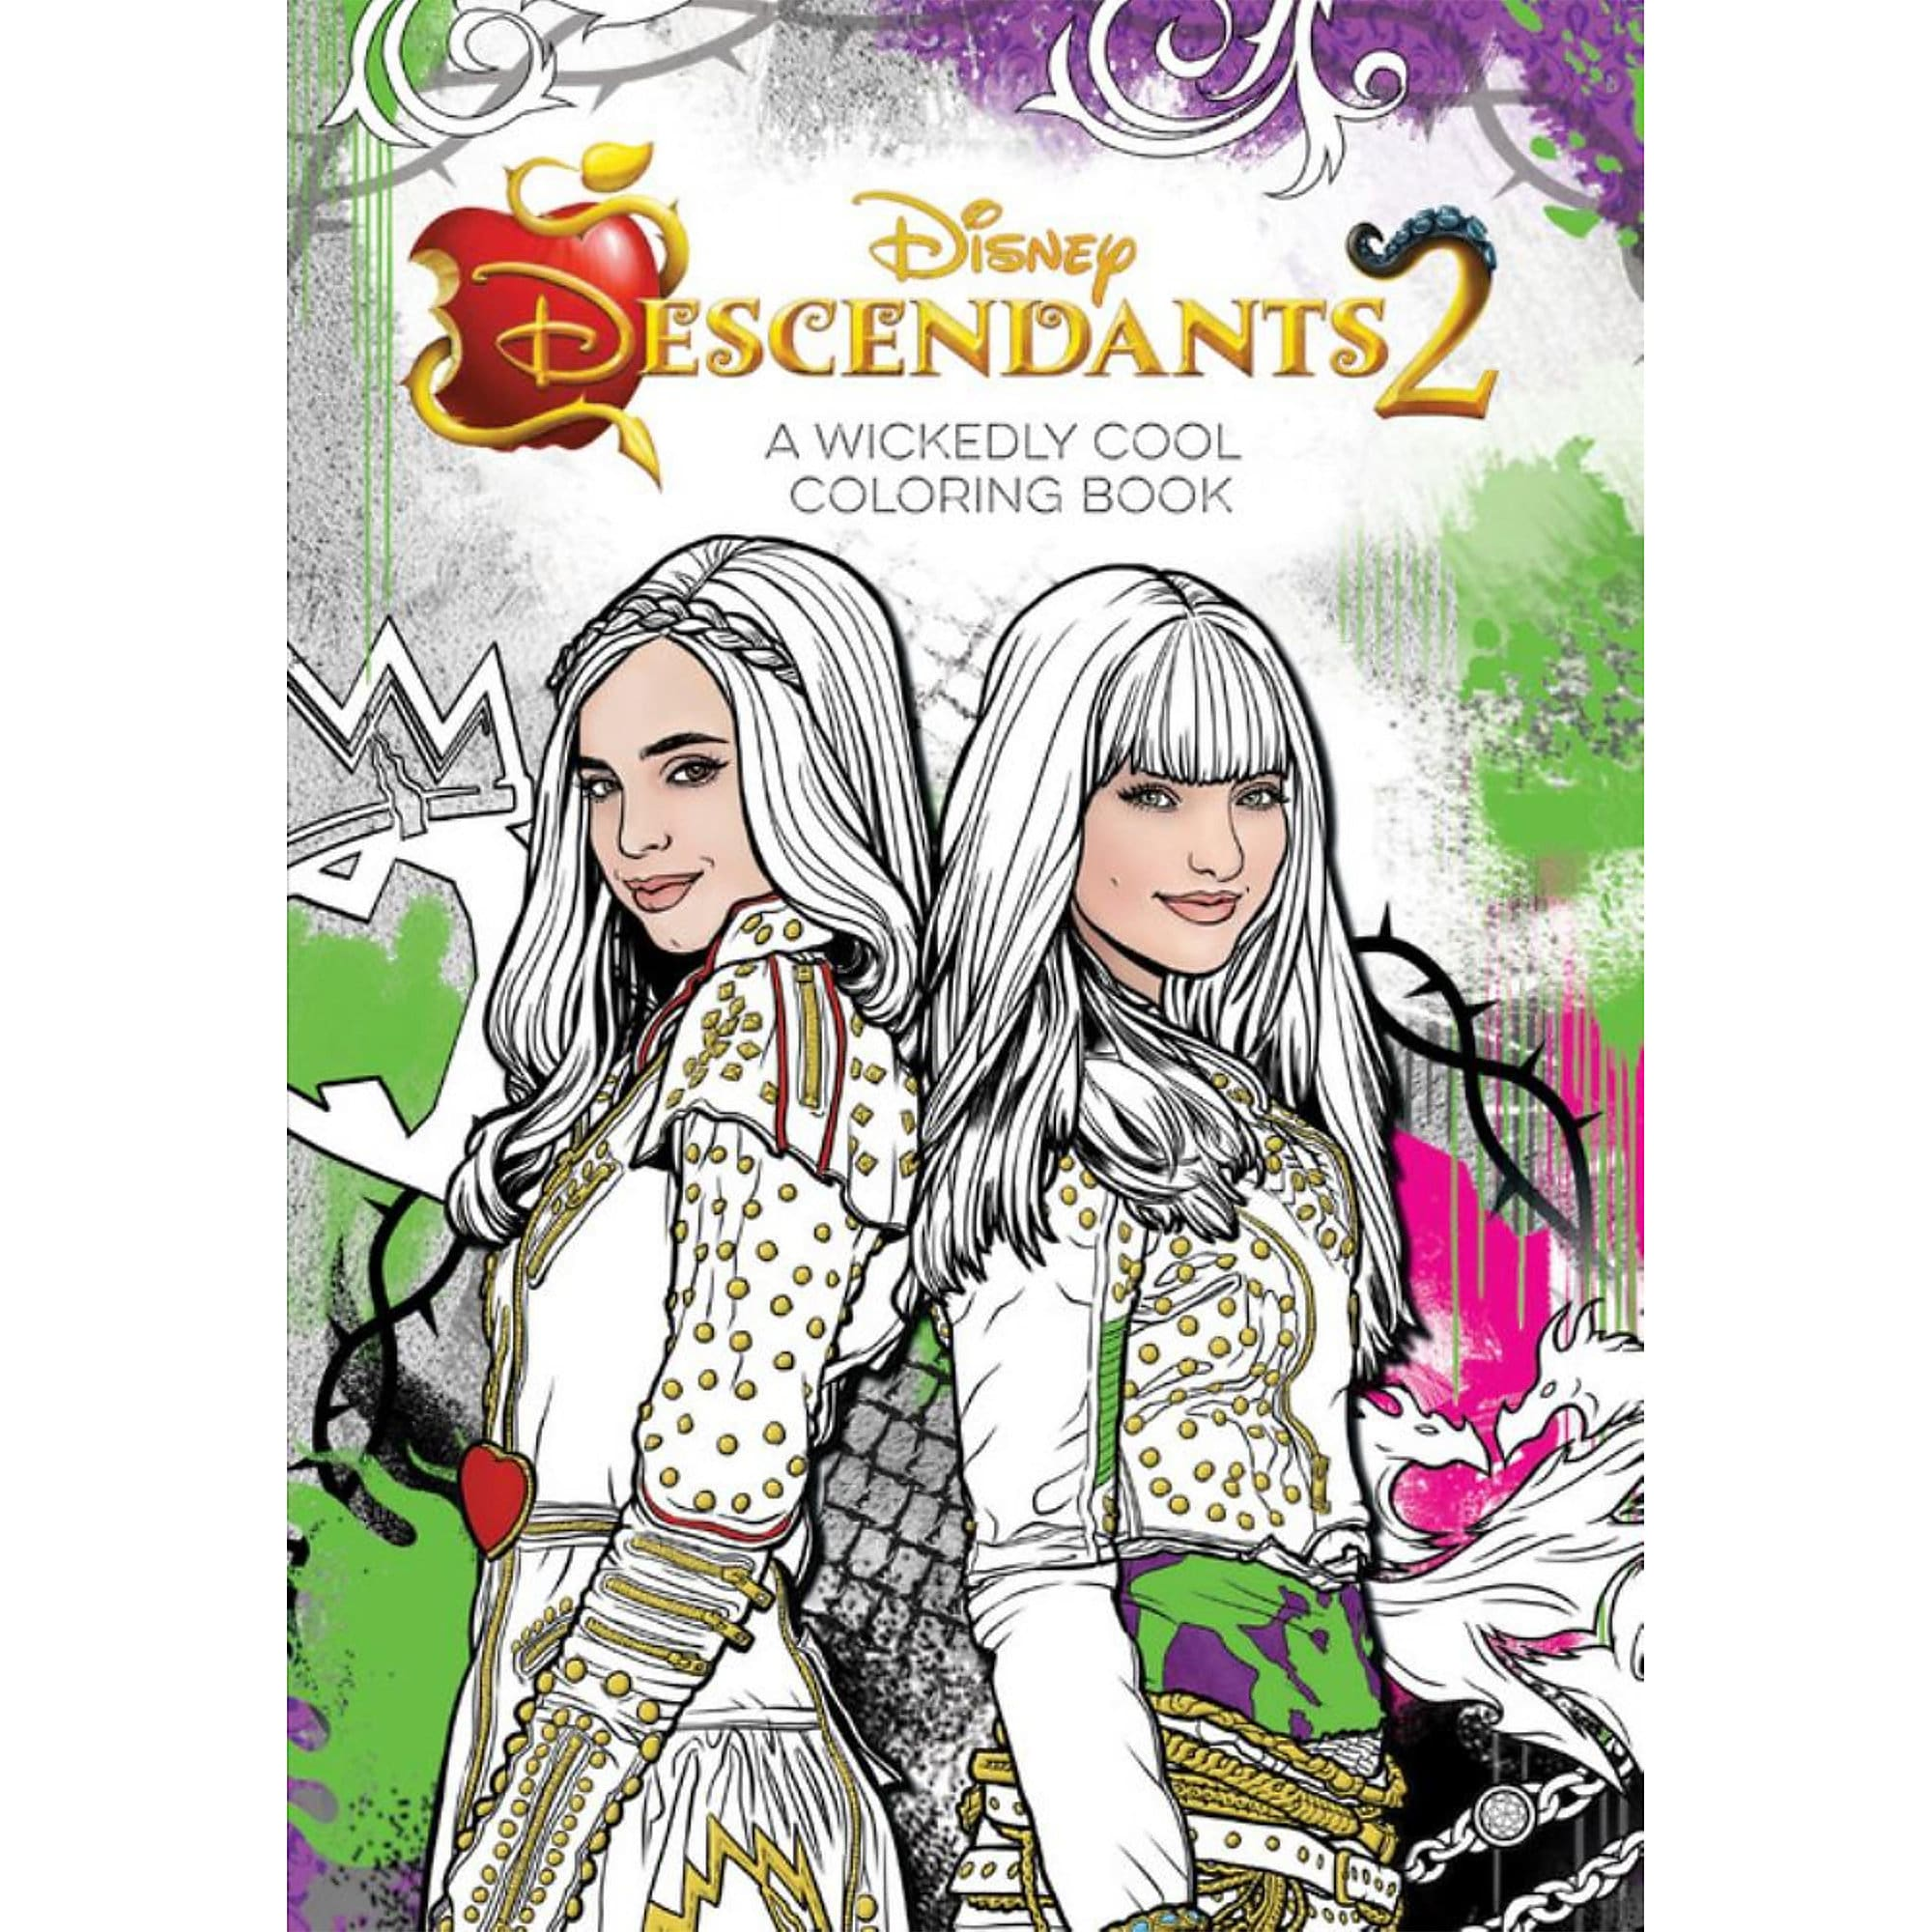 Descendants 2: A Wickedly Cool Coloring Book